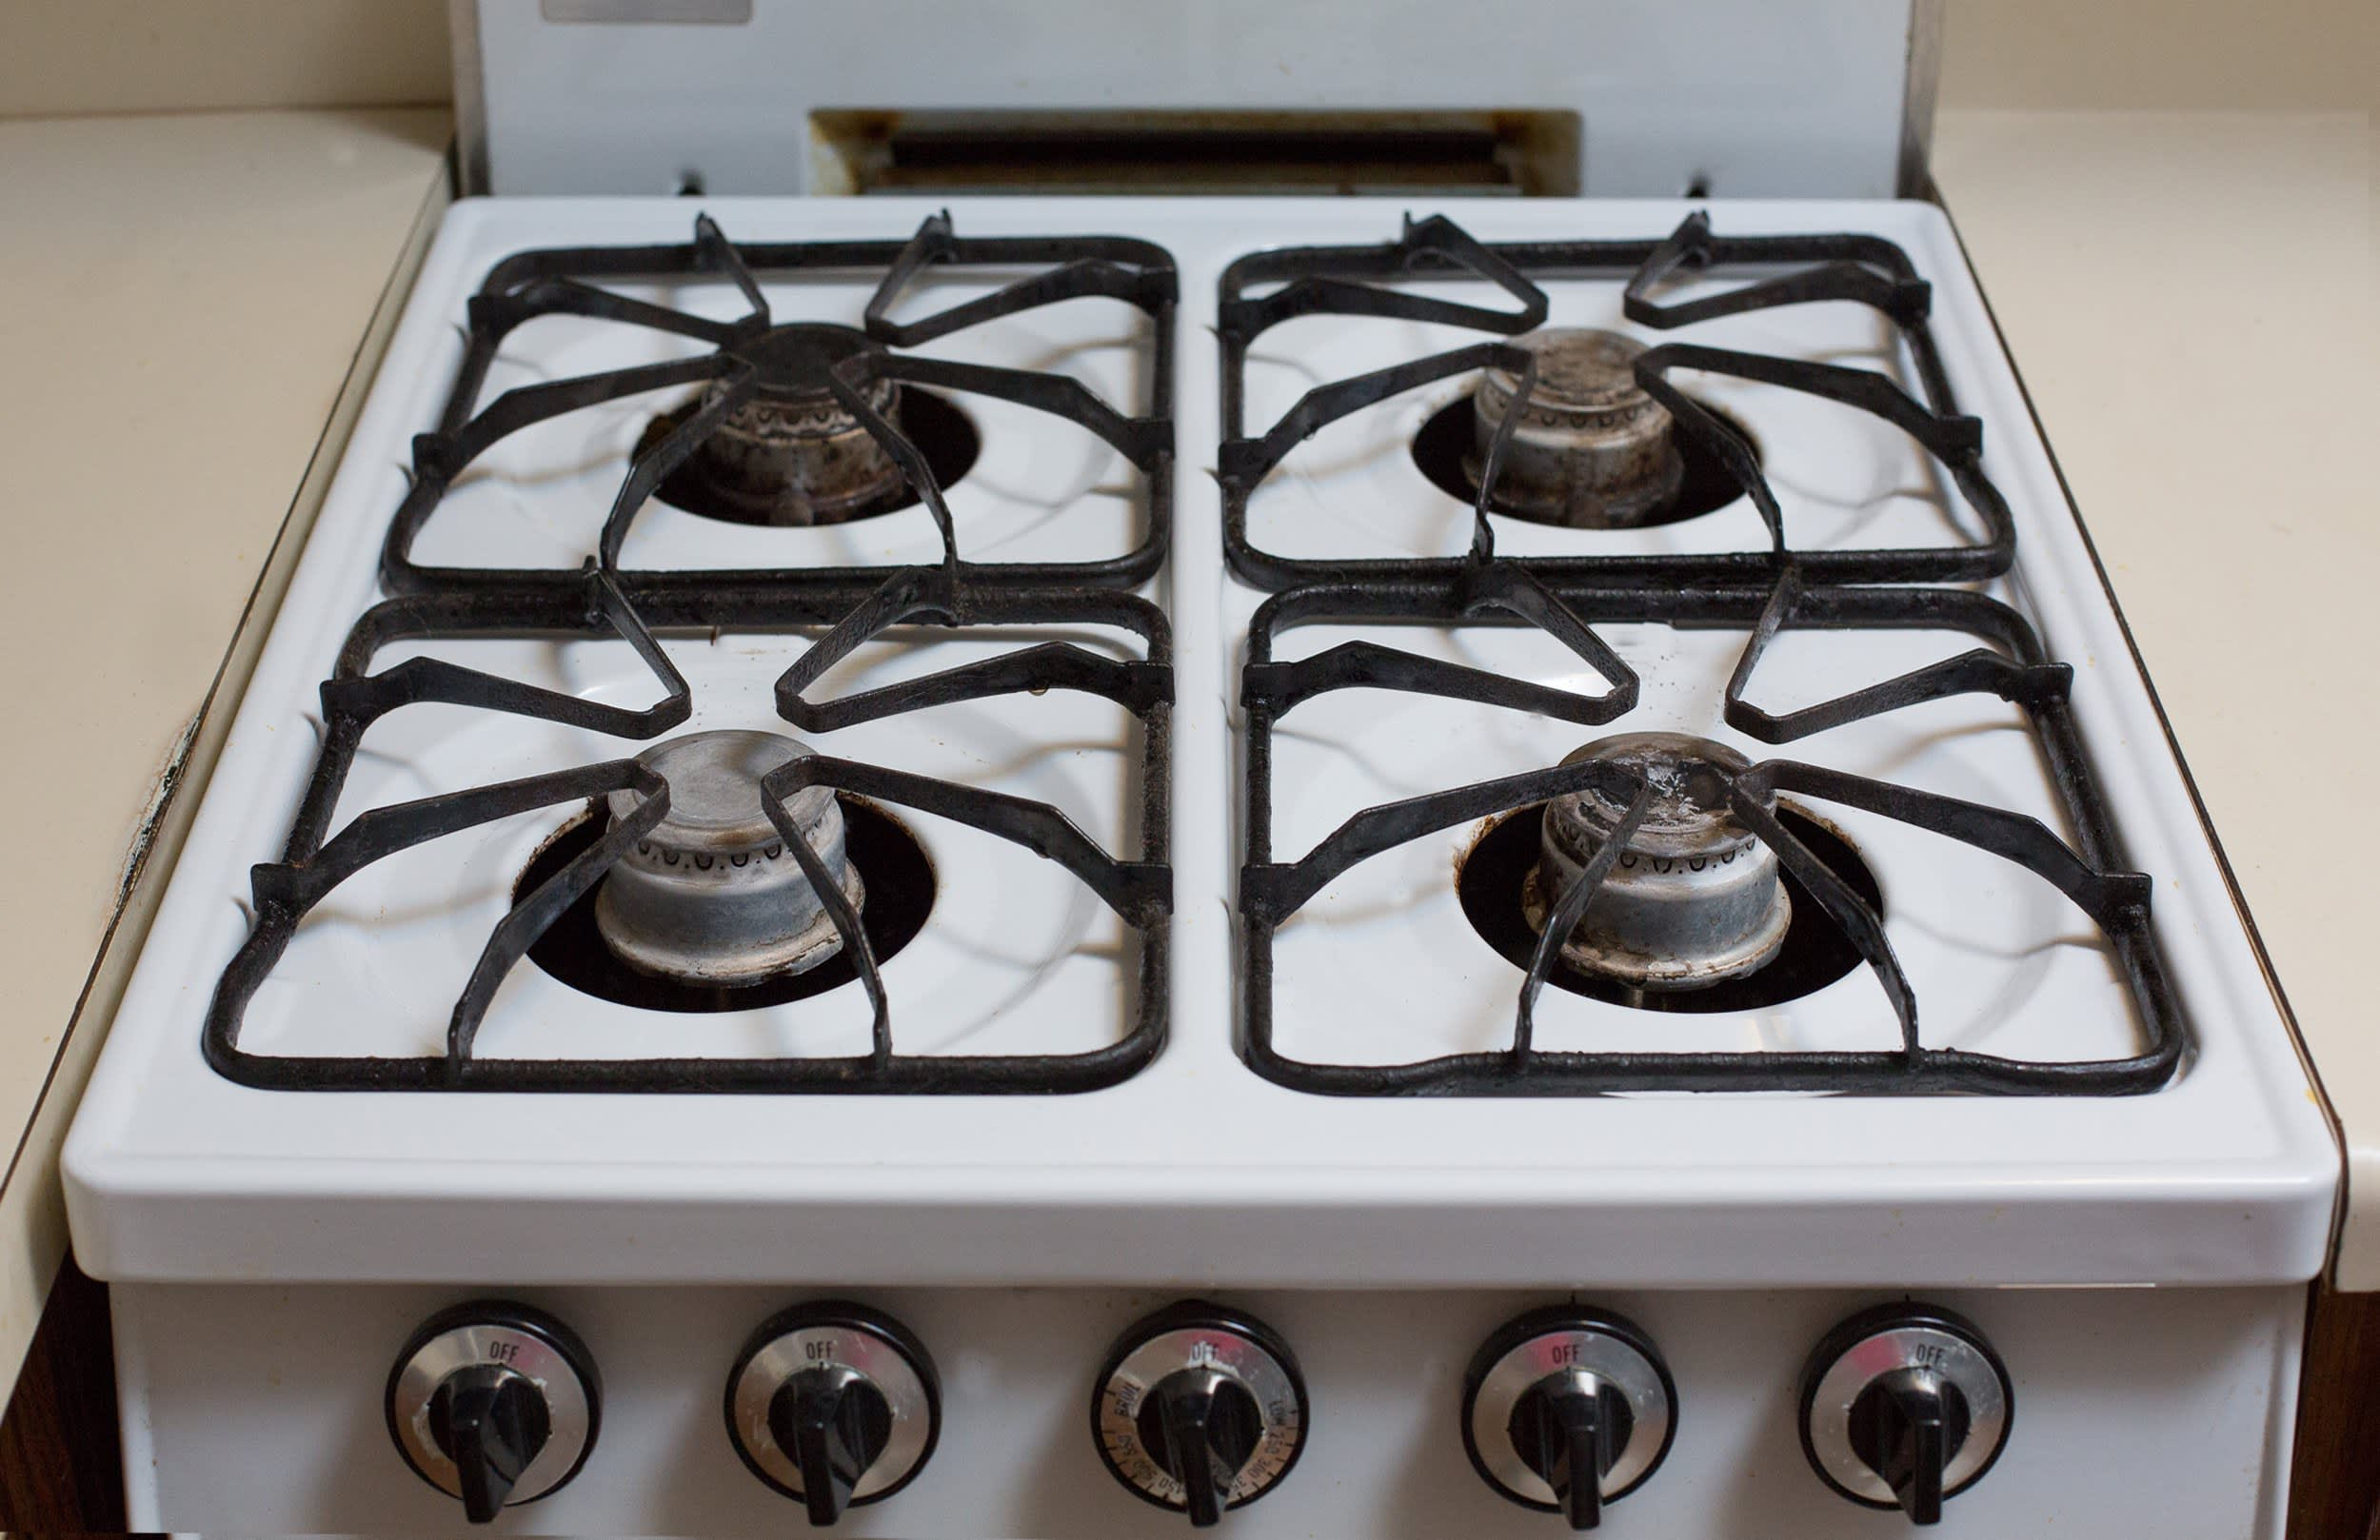 How To Clean a Greasy Gas Stovetop | Kitchn